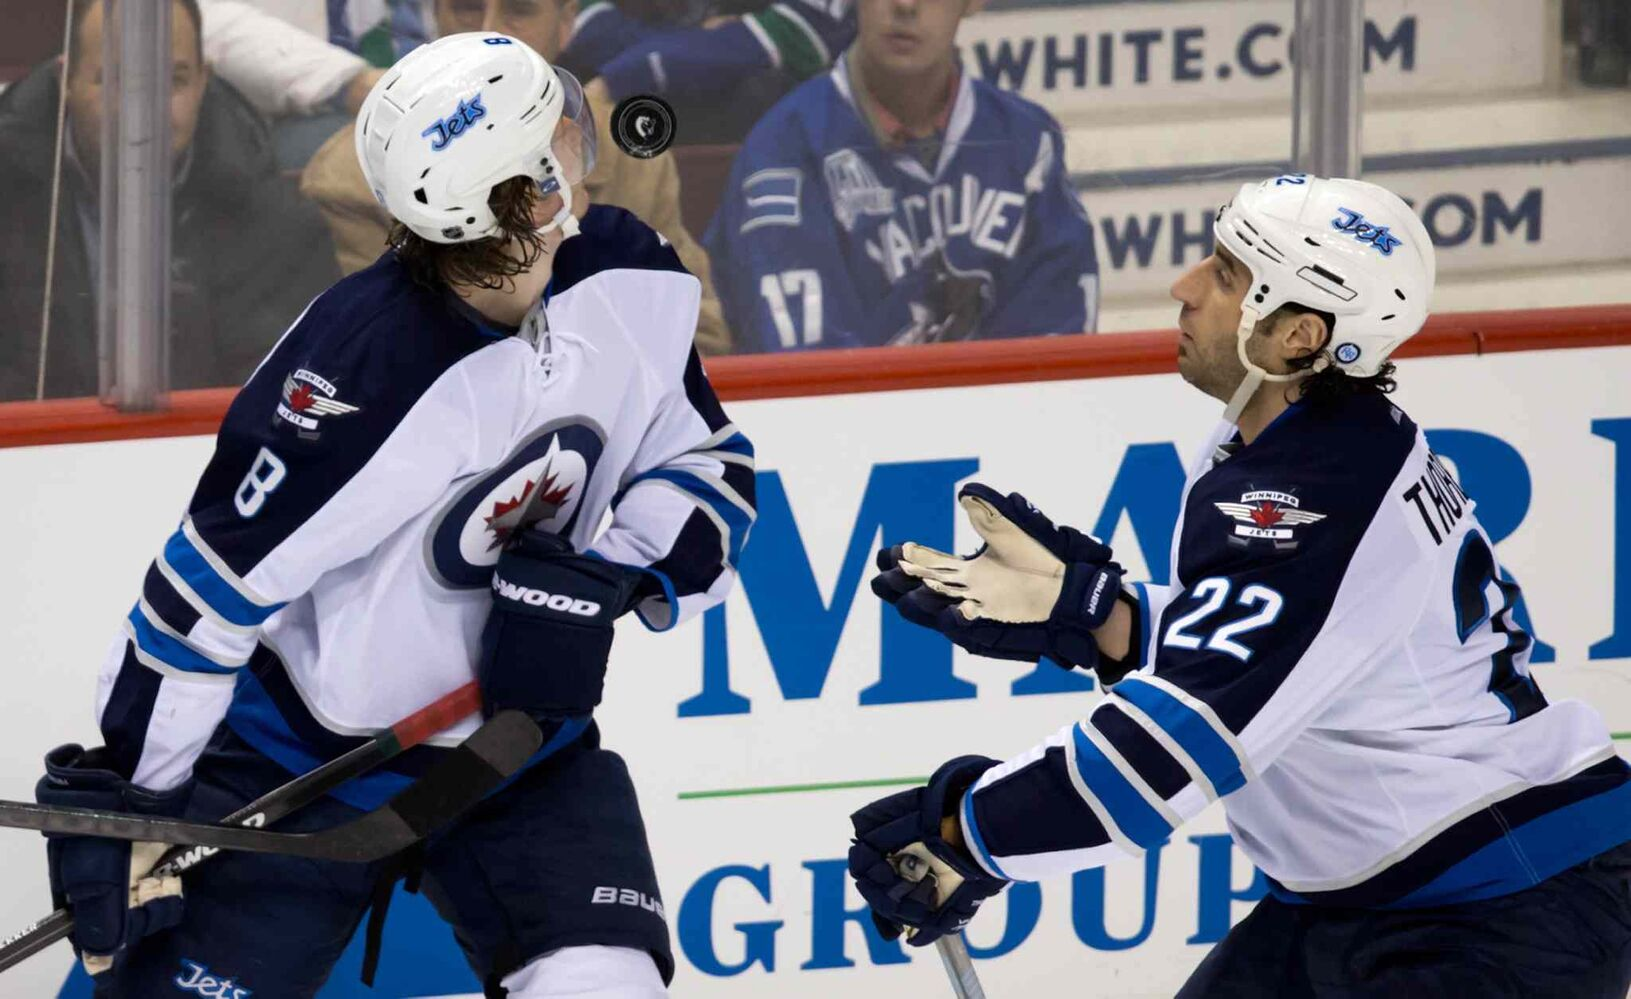 Winnipeg Jets defenceman Jacob Trouba (left) and Chris Thorburn watch an airborne puck during the second period.